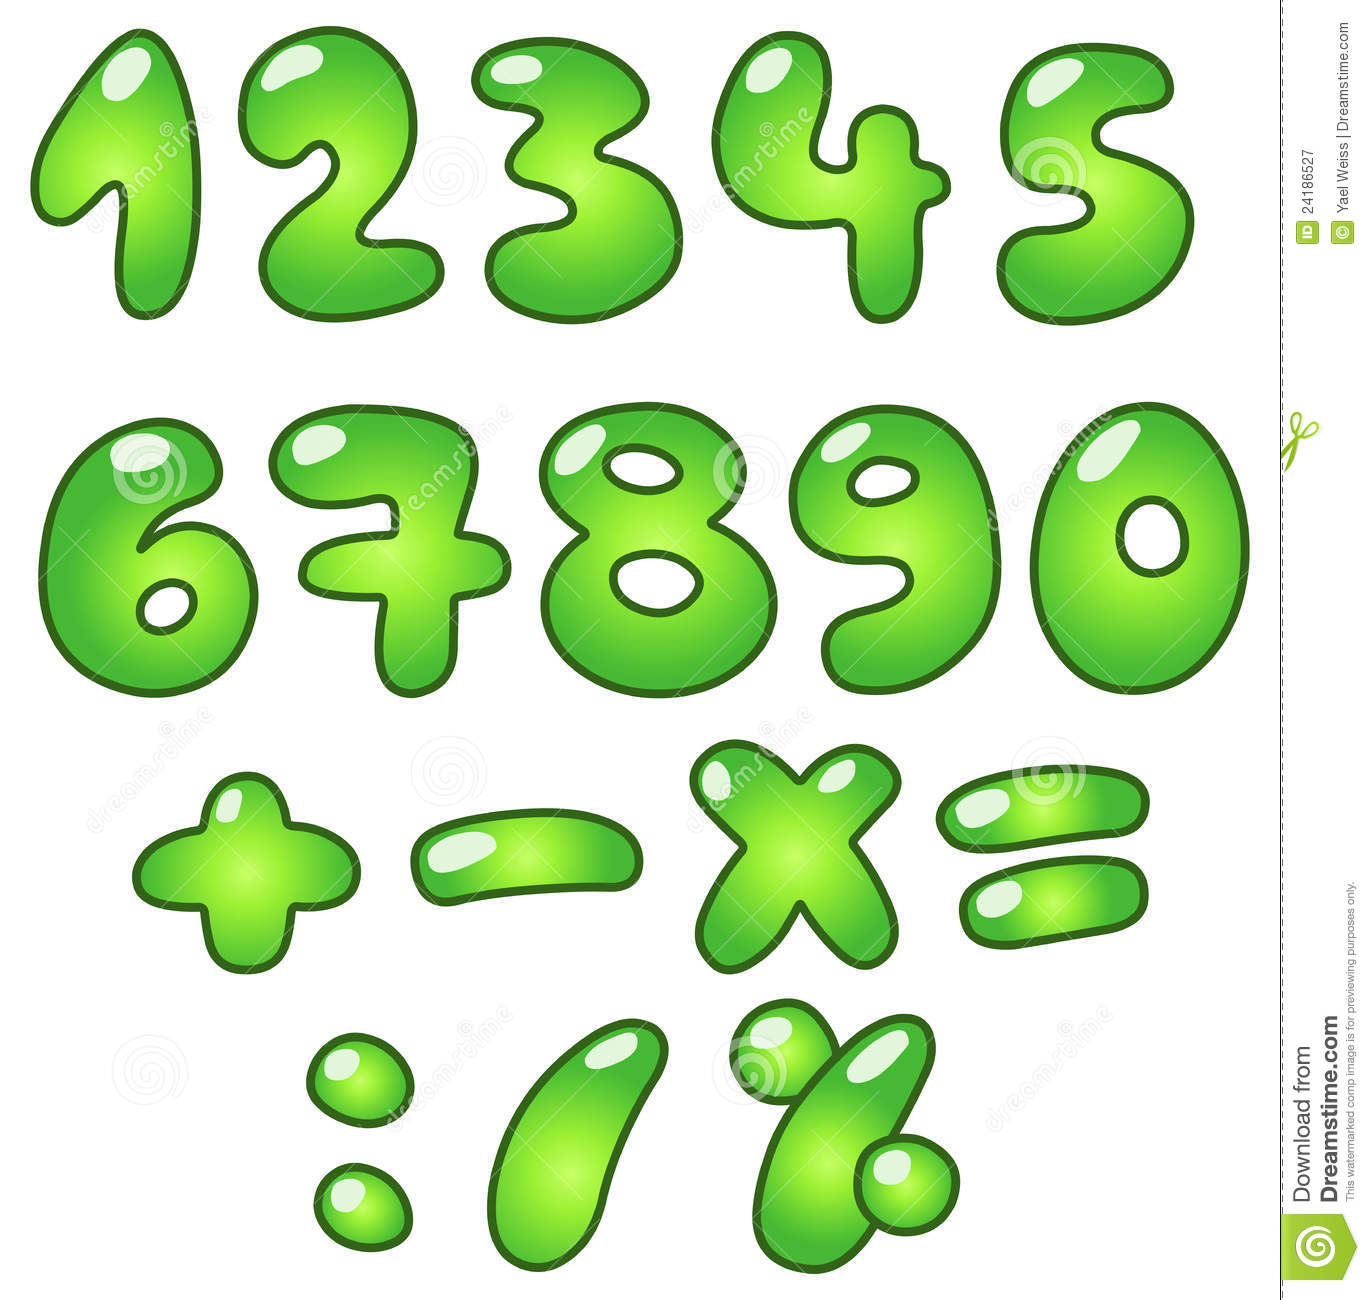 Eco Bubble Numbers Royalty Free Stock Photography - Image: 24186527